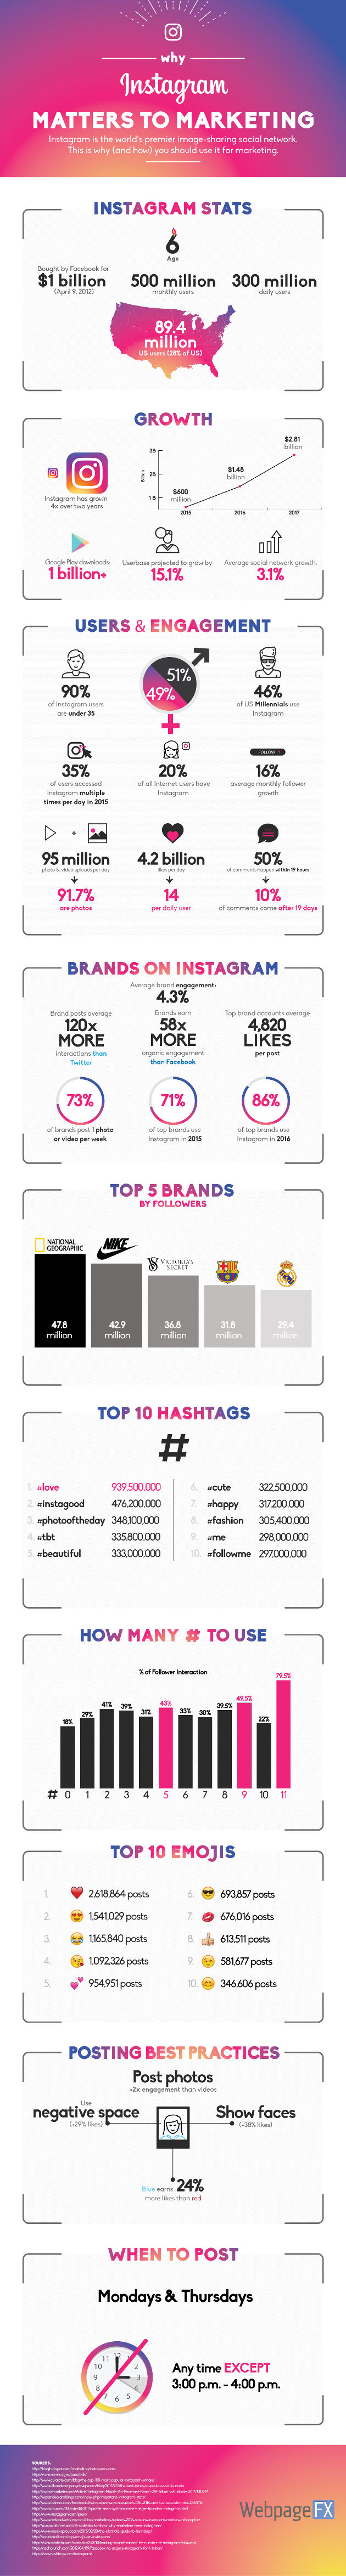 161219-infographic-instagram-marketing